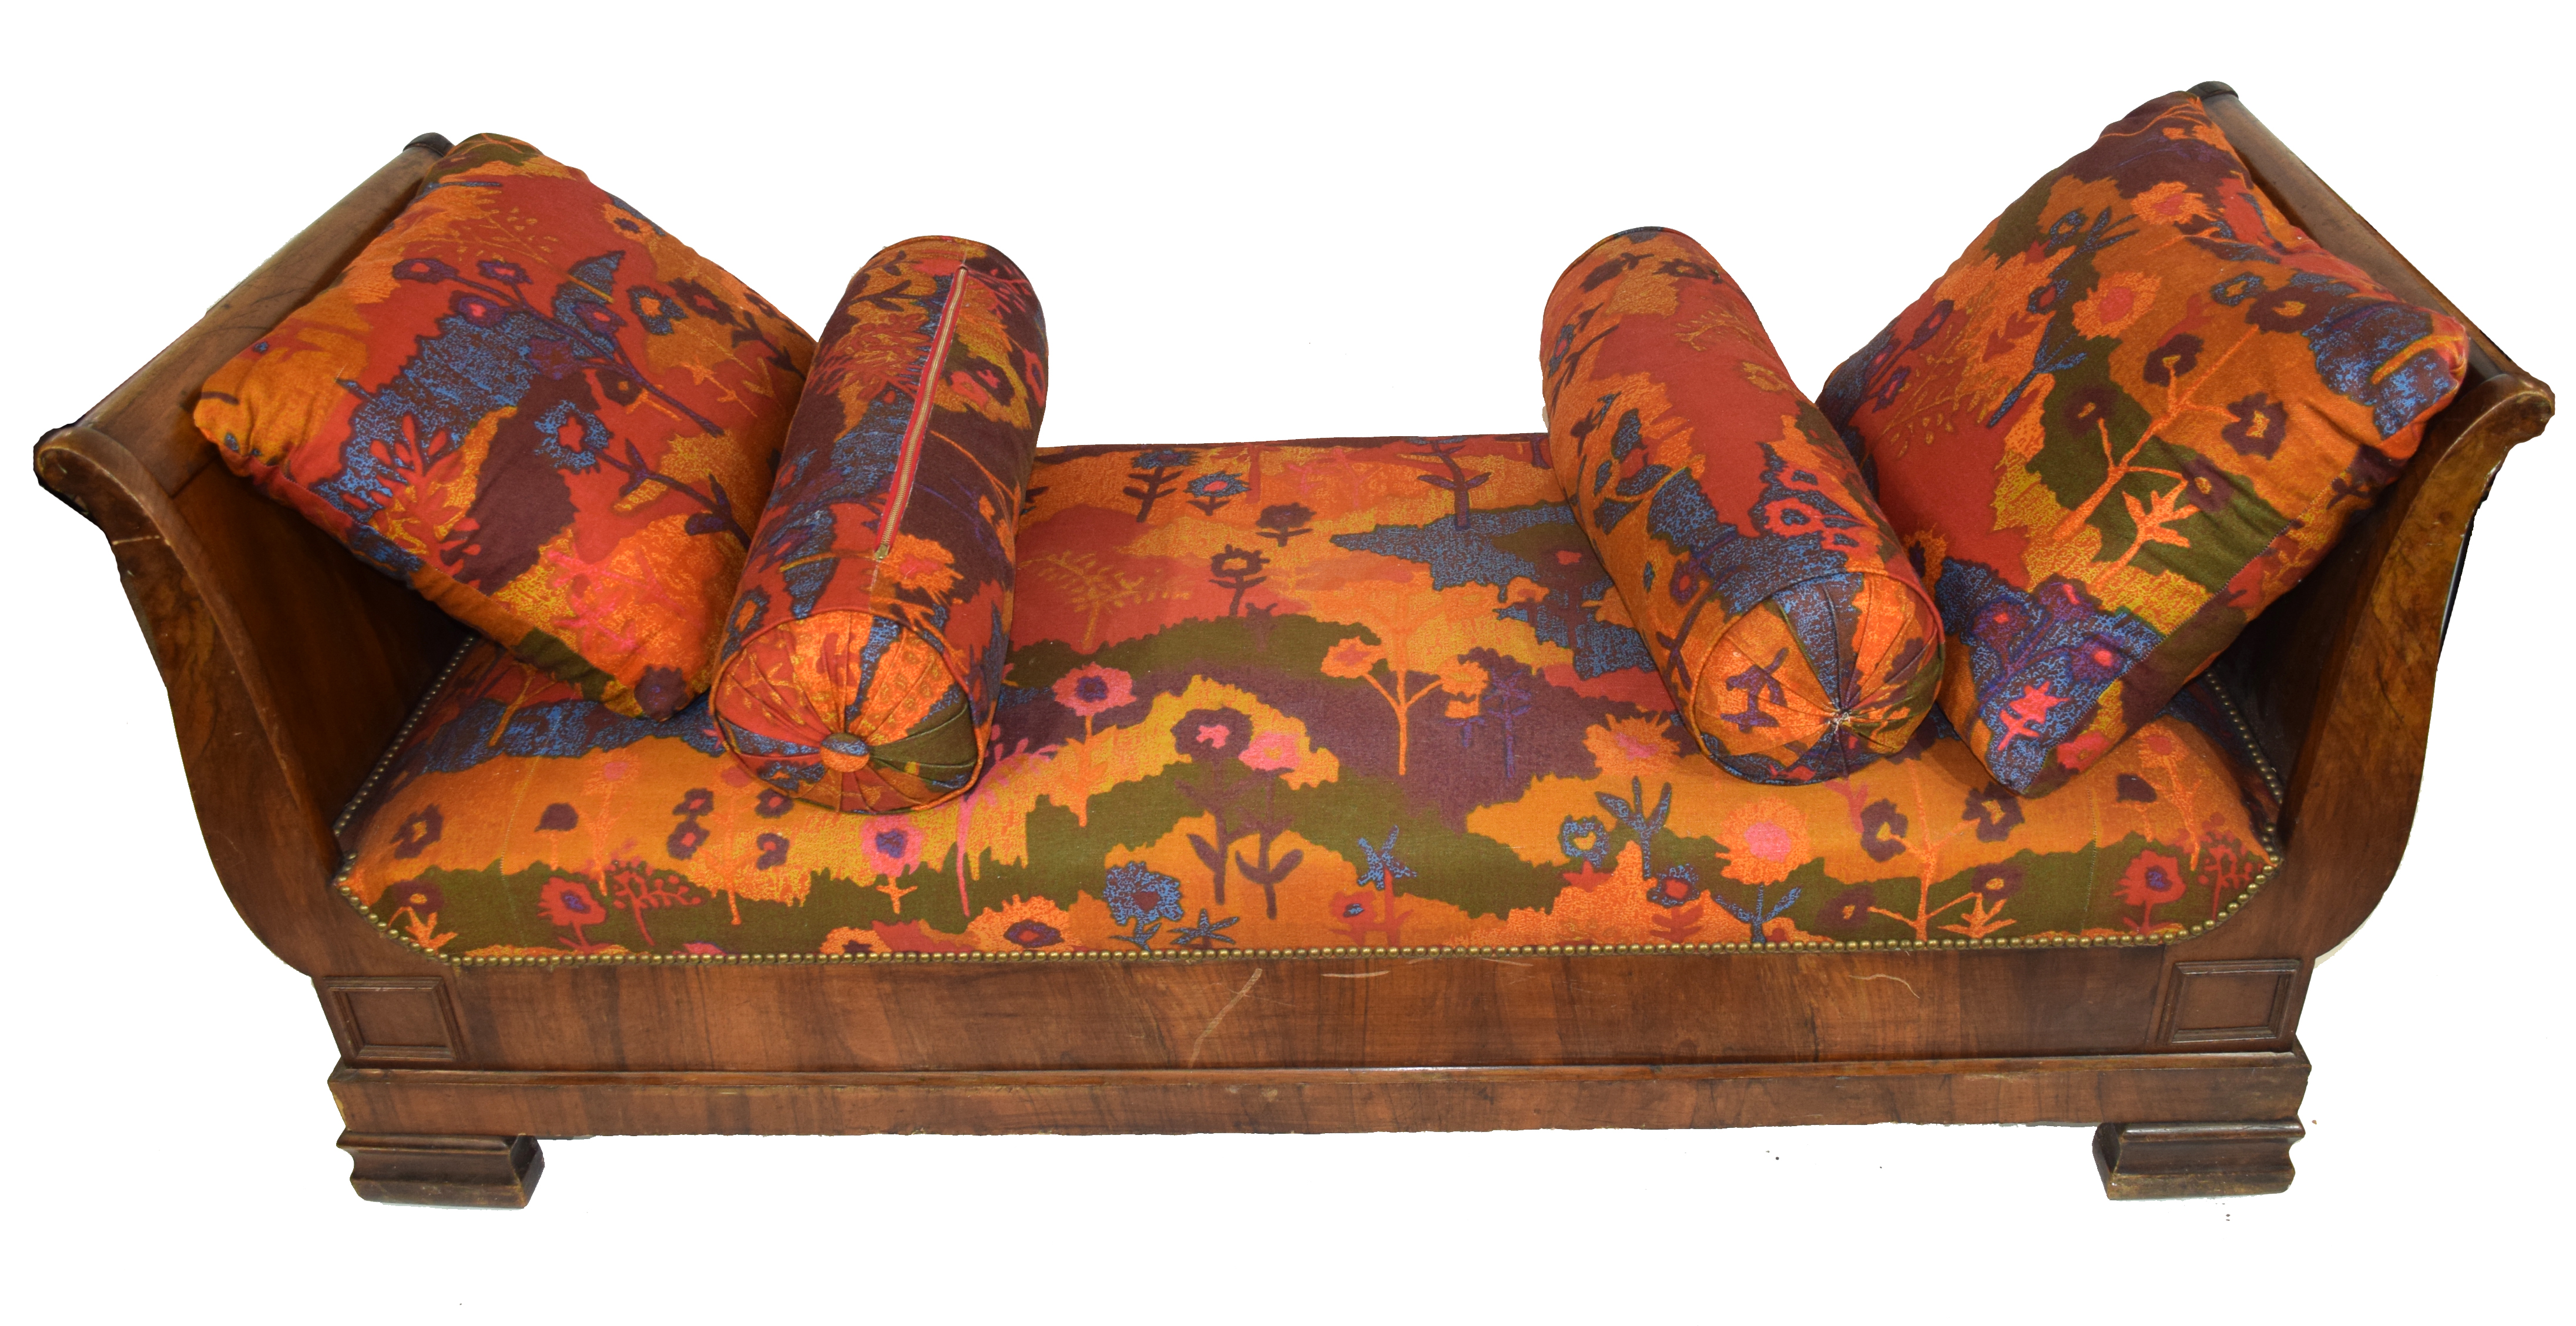 Late 19th century Continental side chair or chaise longue - Image 3 of 3